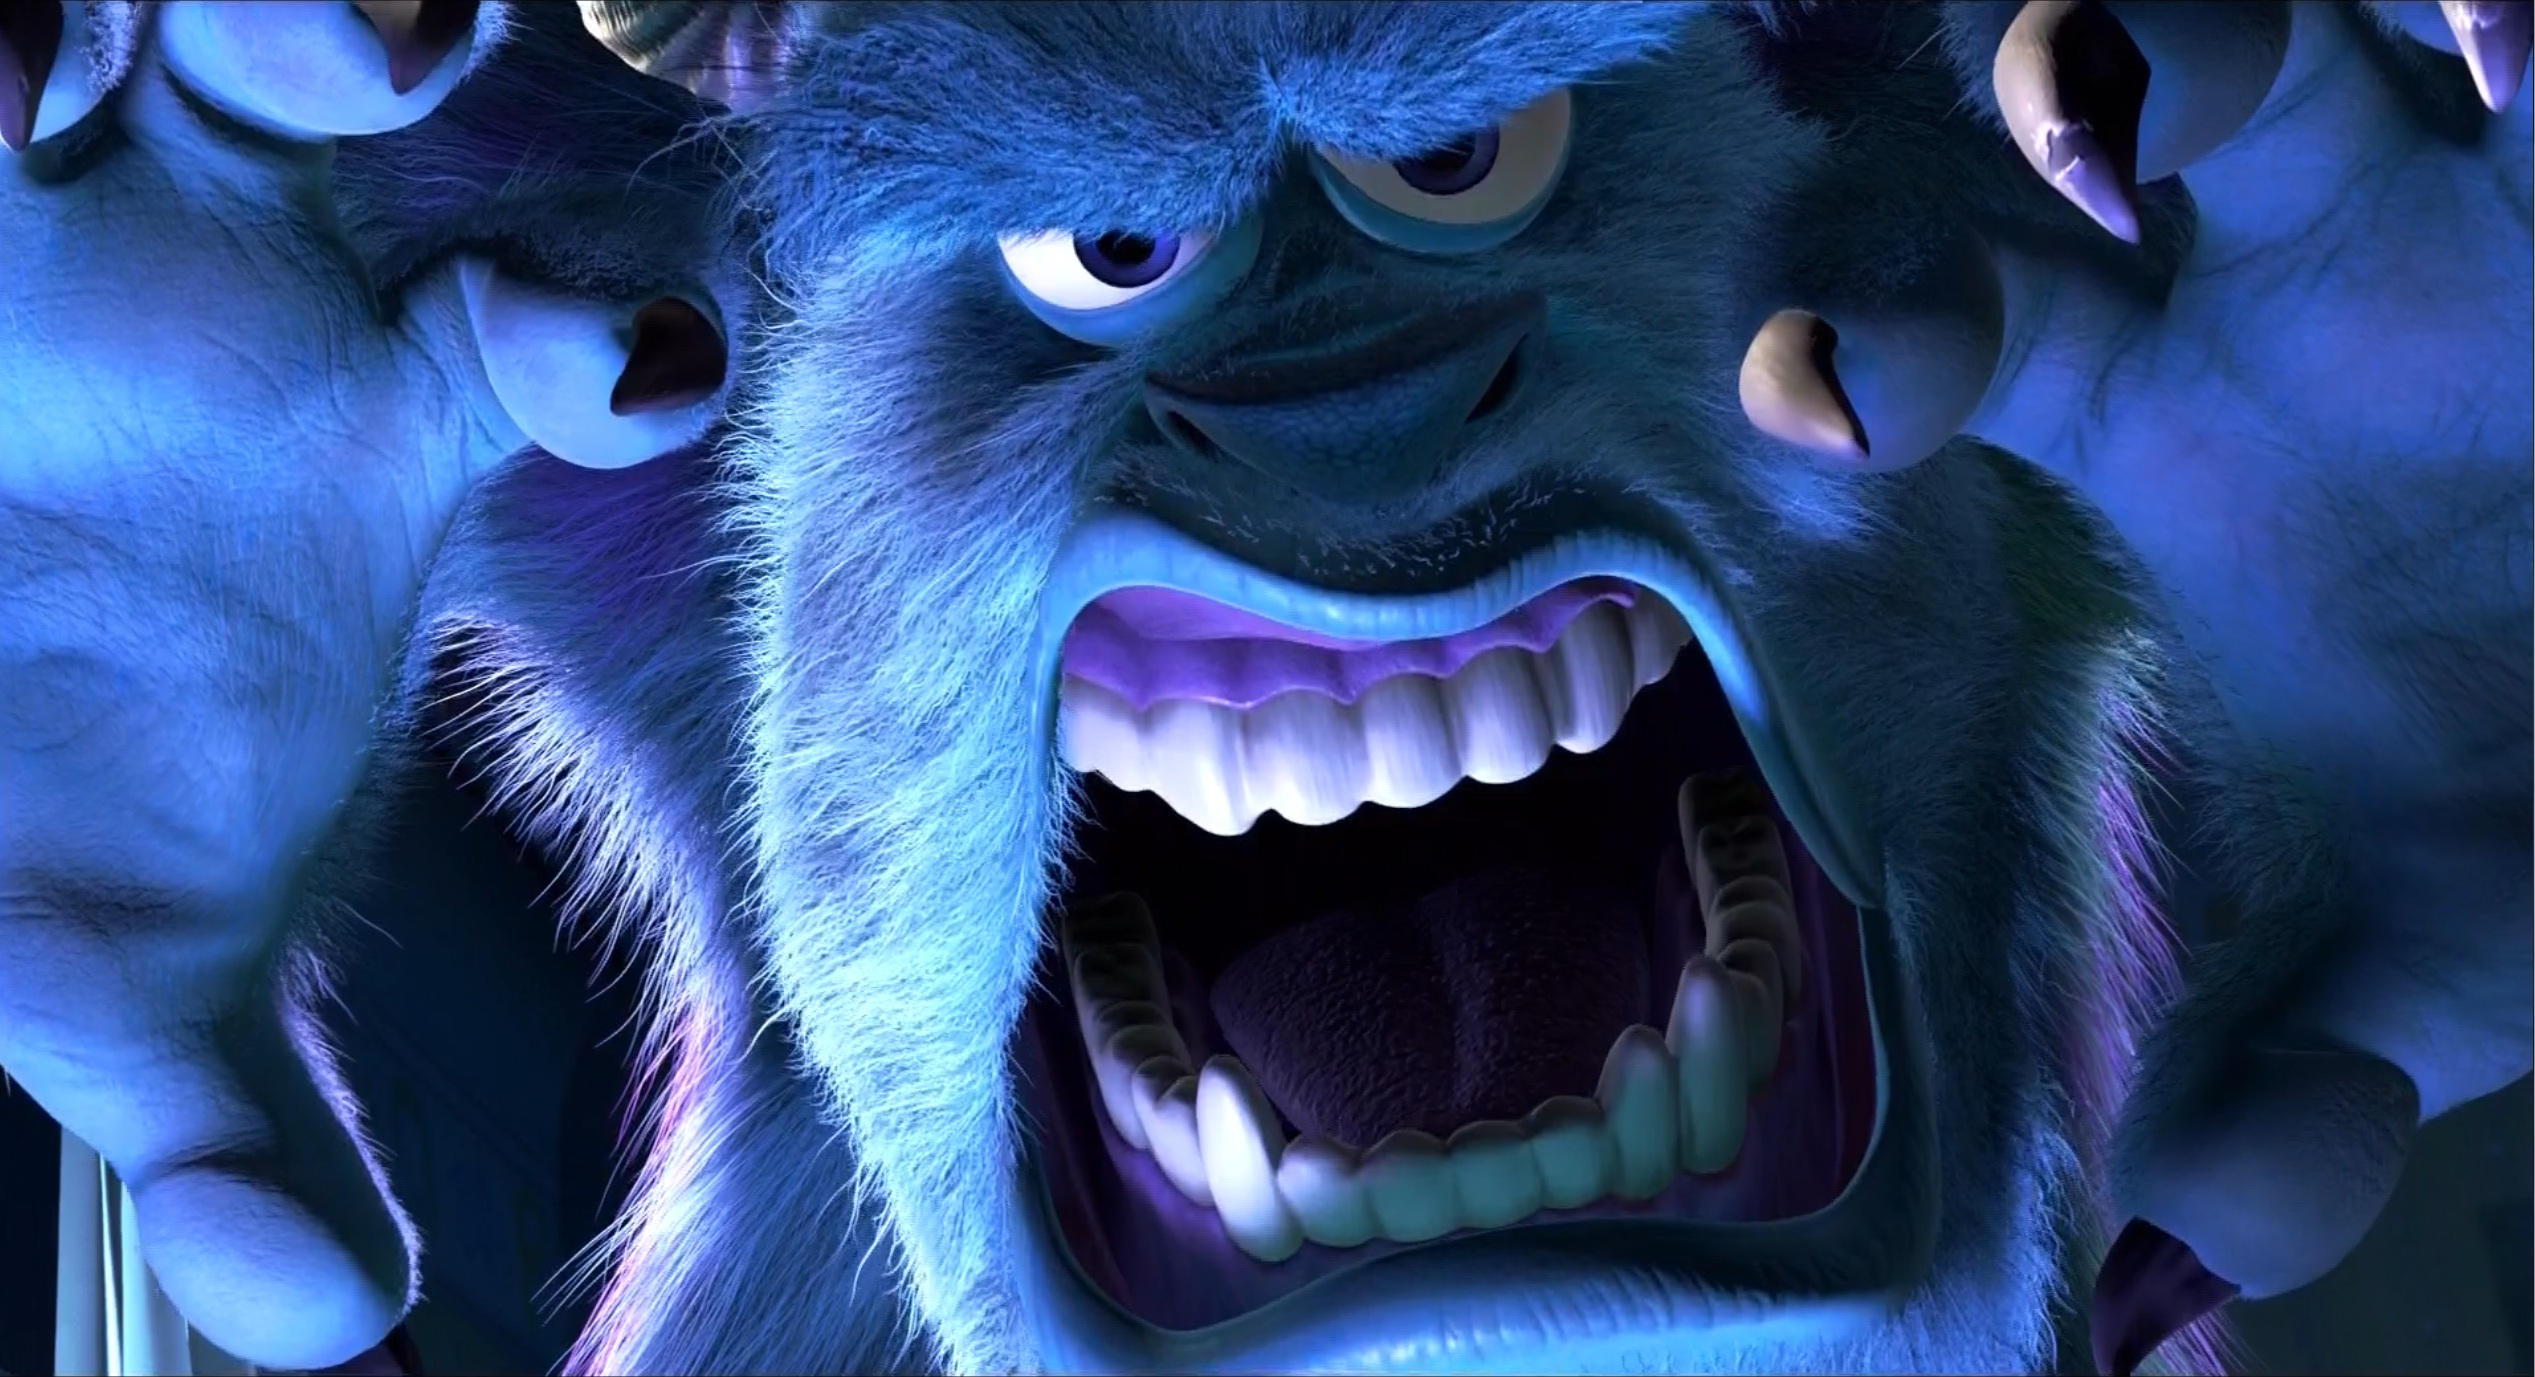 monsters, inc. full hd wallpaper and background image | 2535x1377